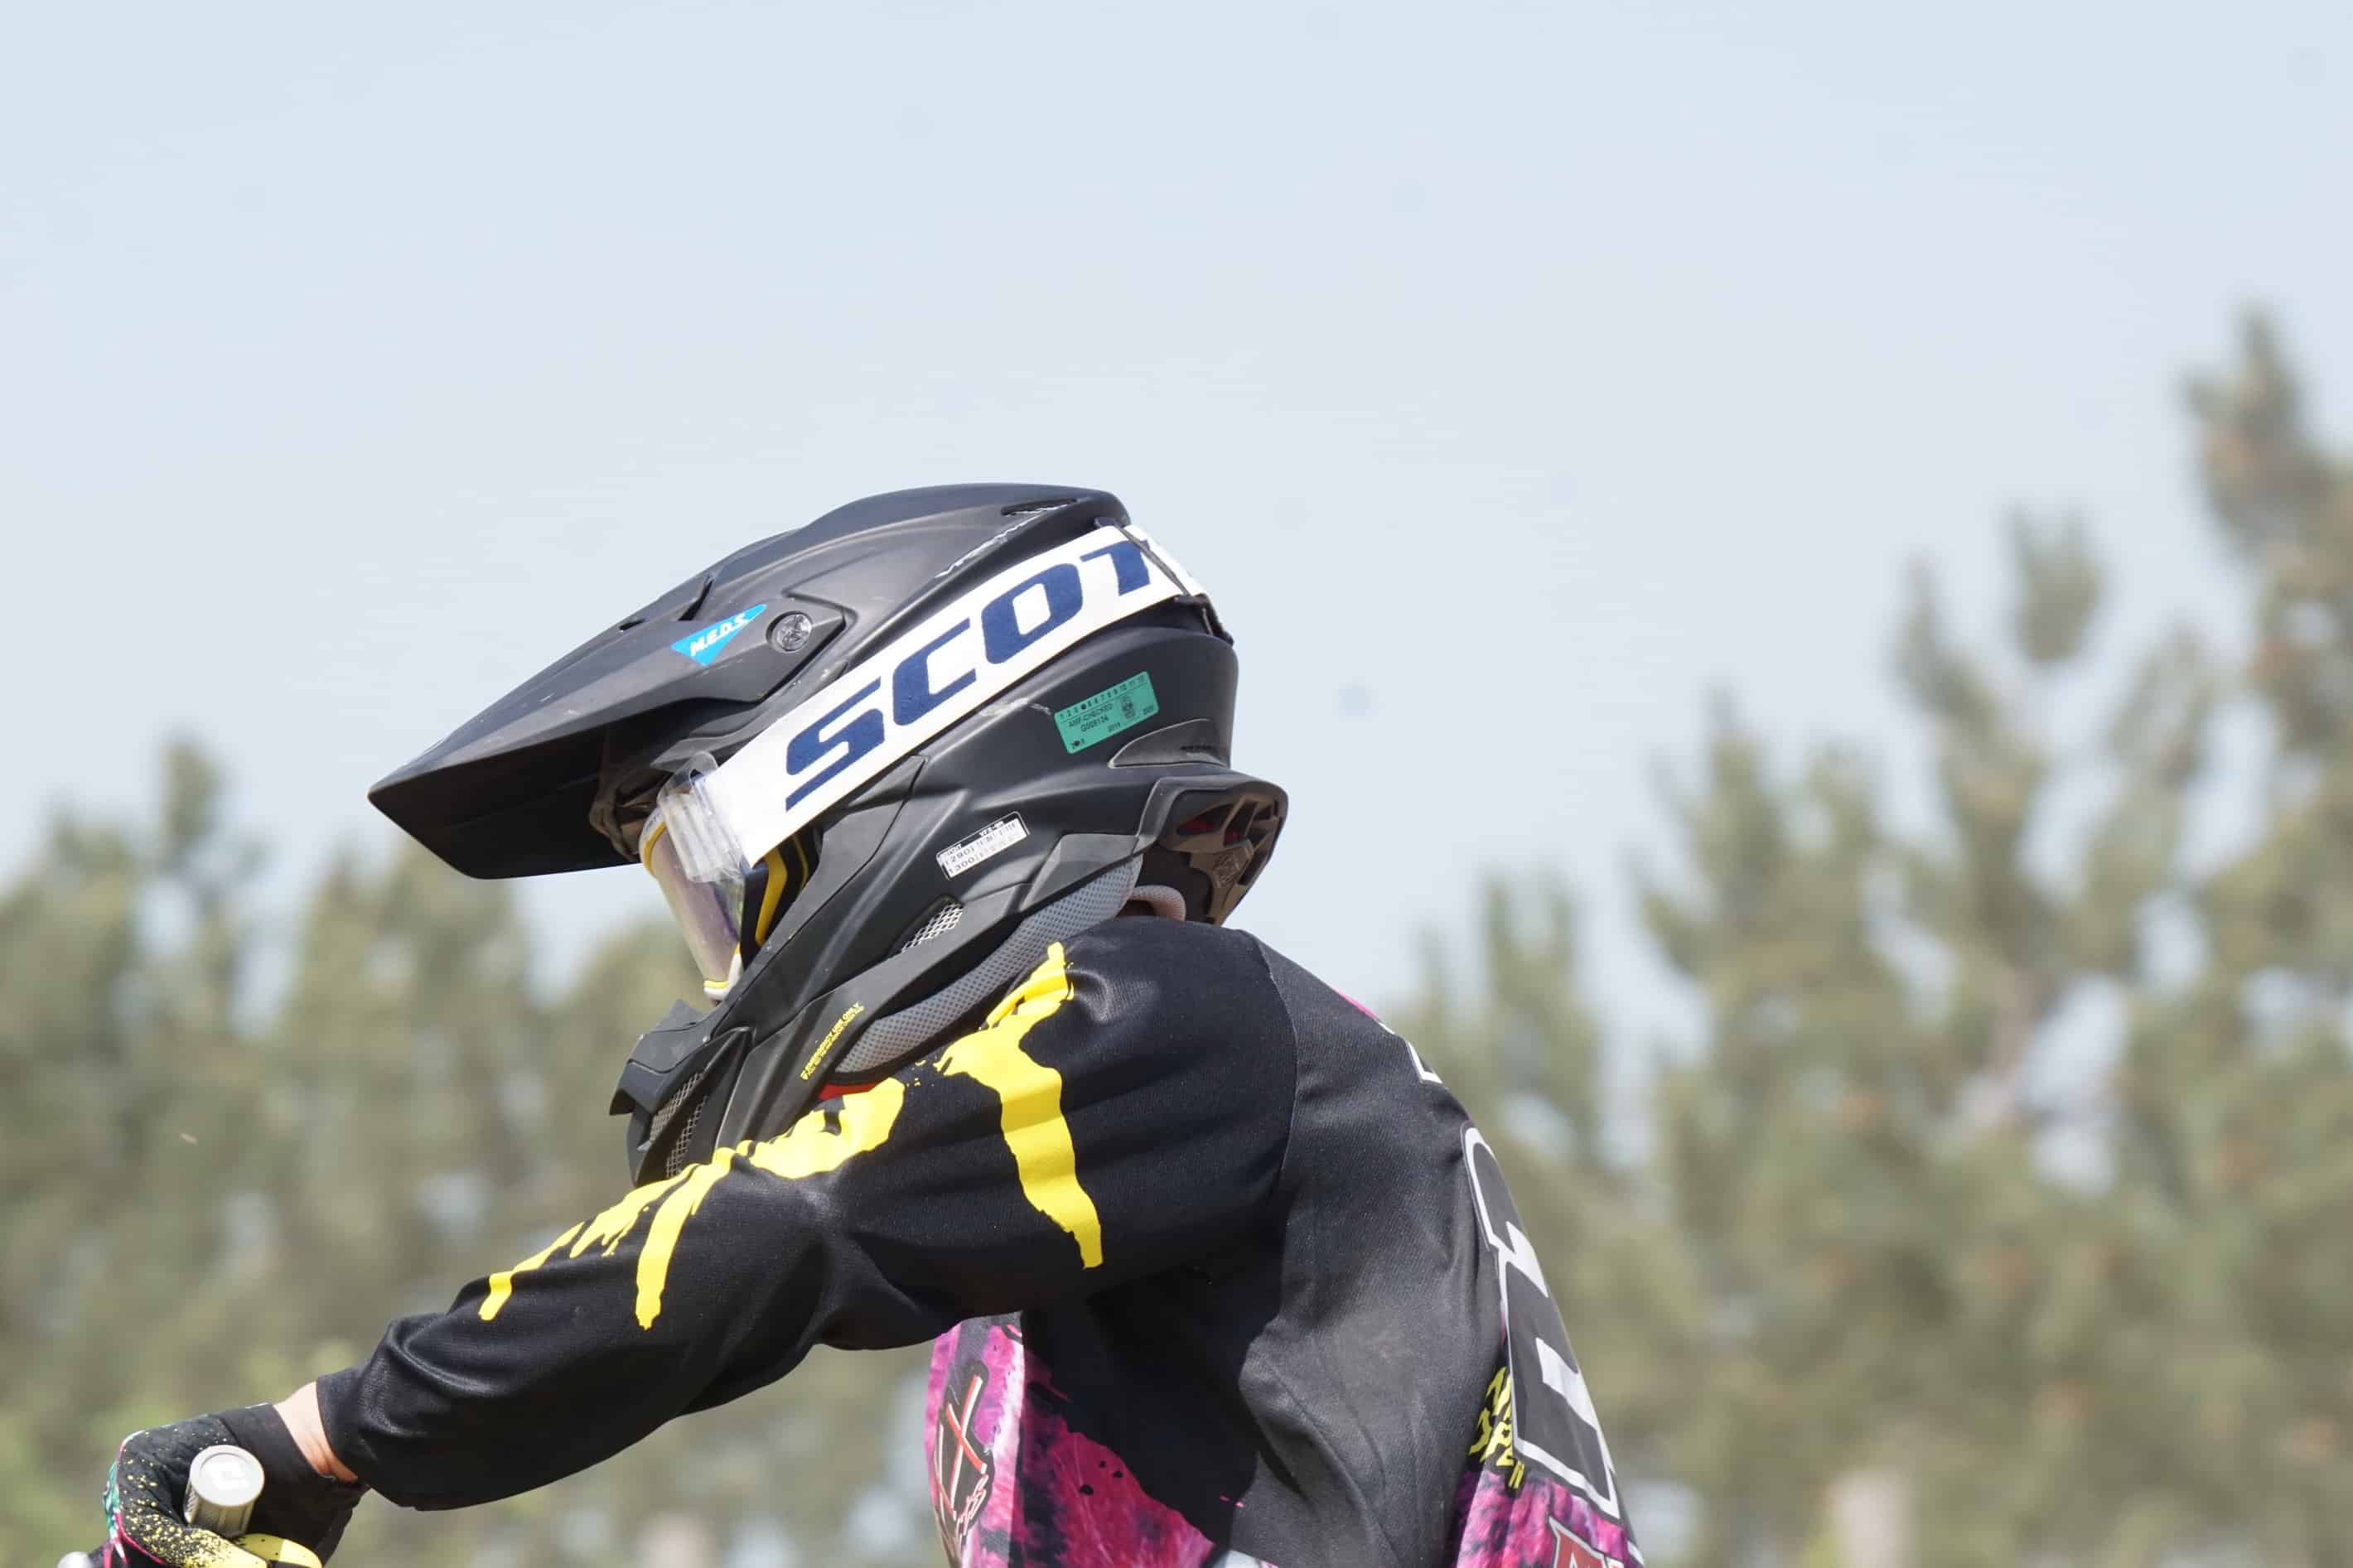 DSC 164_Moto Cross Sittendorf Teil1 am 29.04.2018